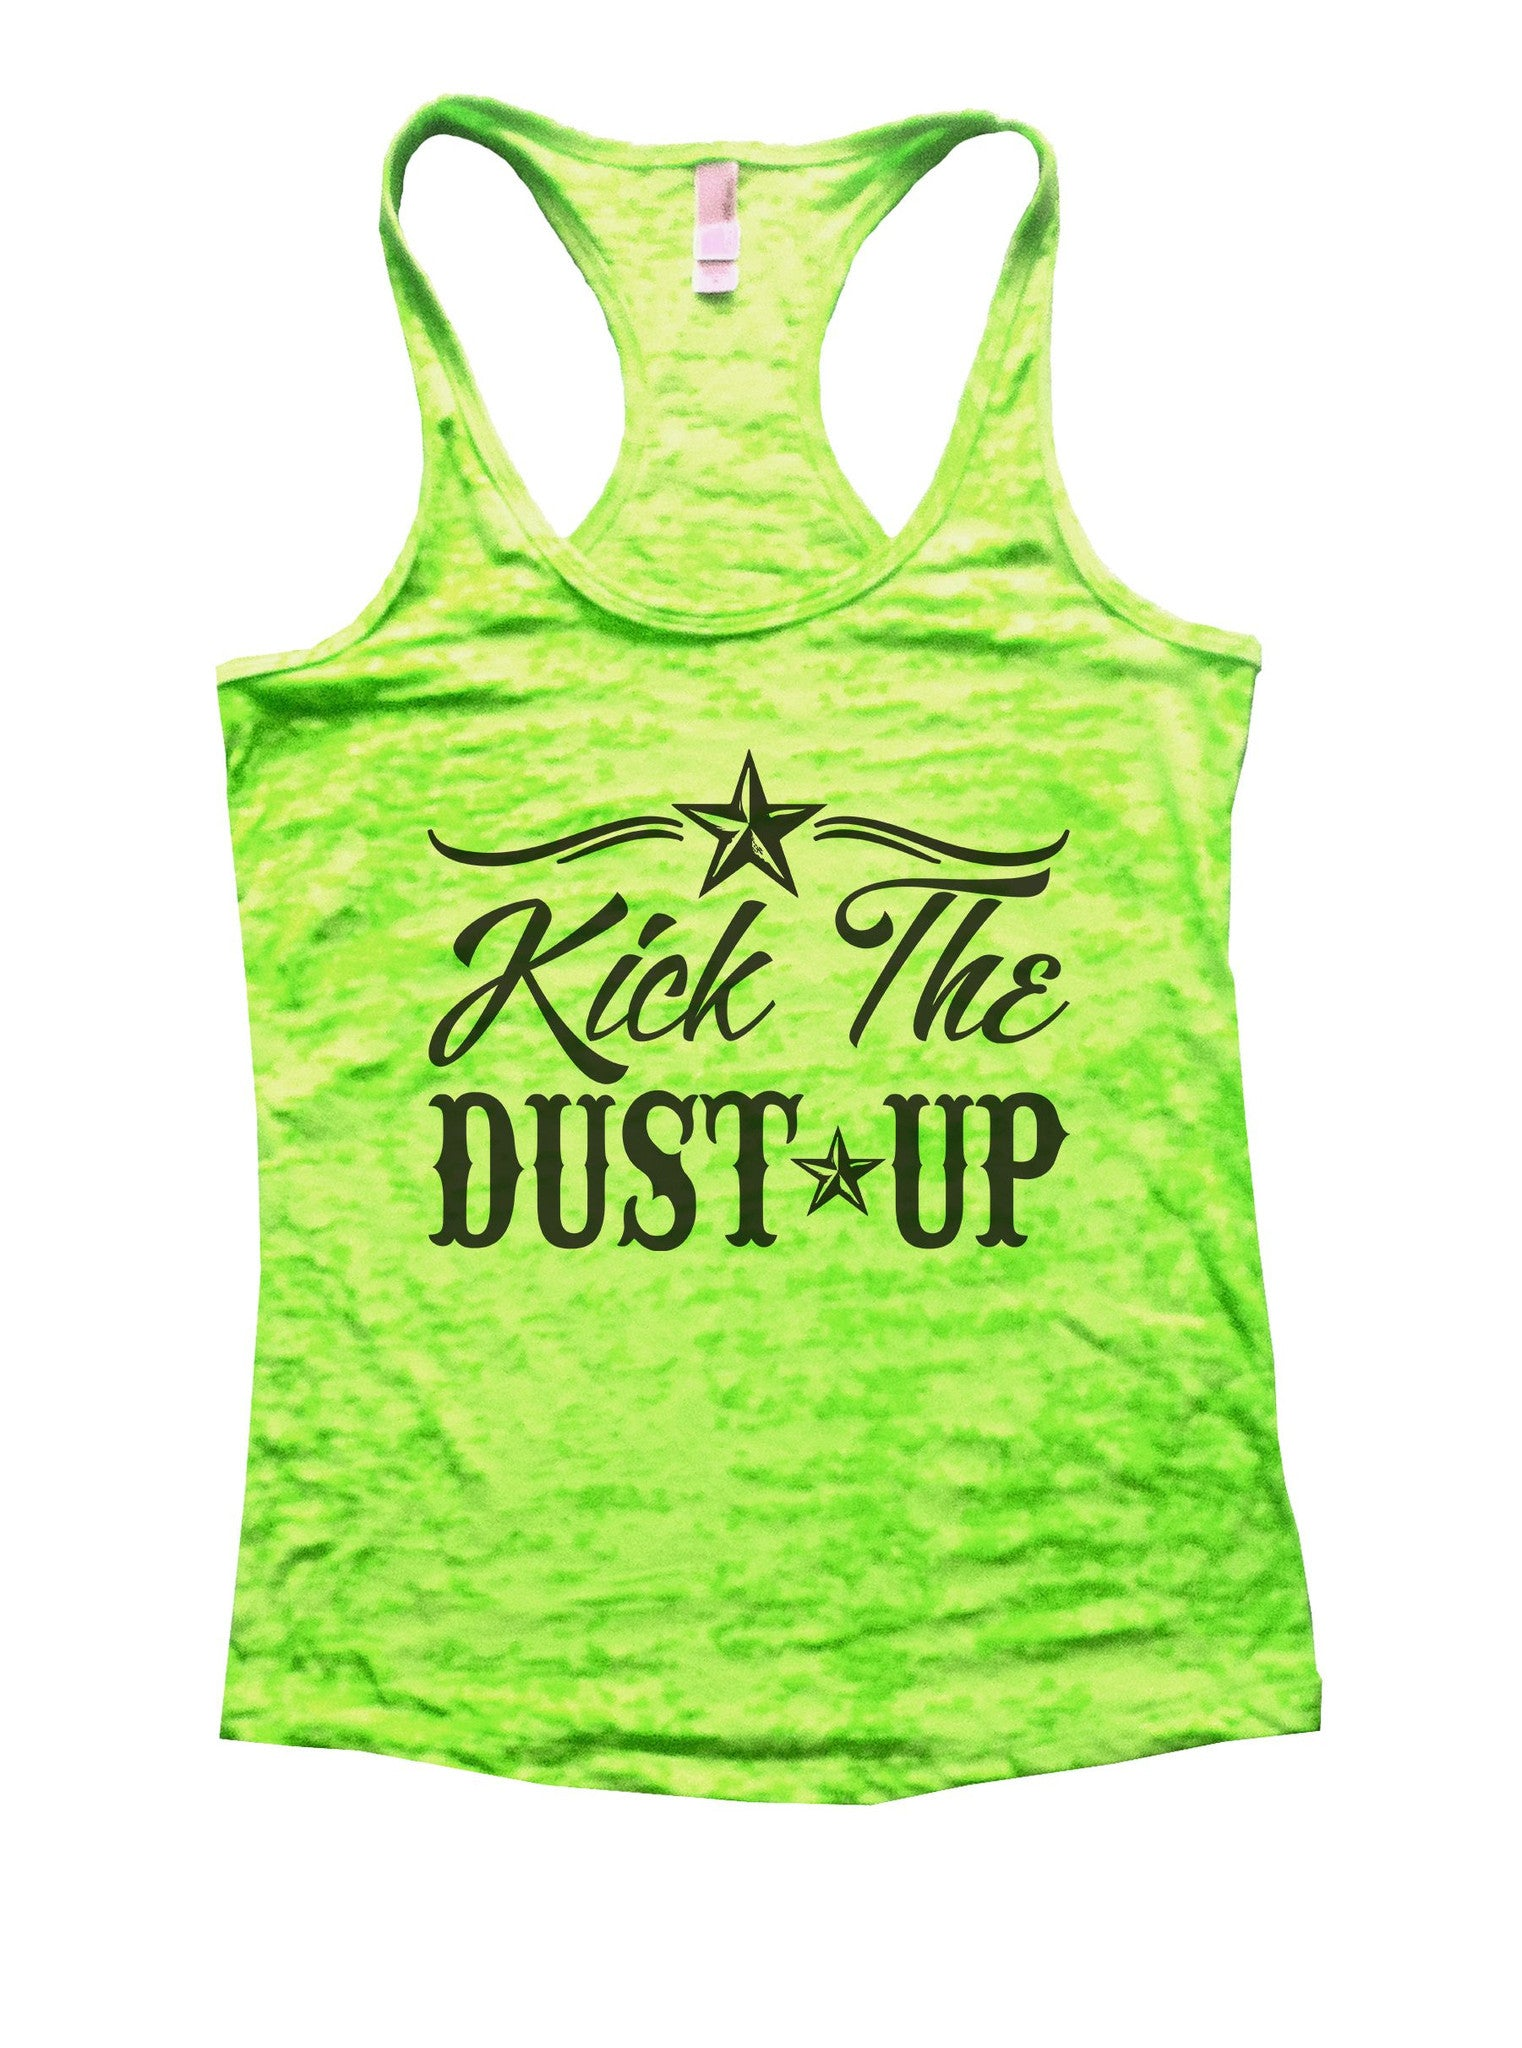 Kick The Dust Up Burnout Tank Top By BurnoutTankTops.com - 1028 - Funny Shirts Tank Tops Burnouts and Triblends  - 1